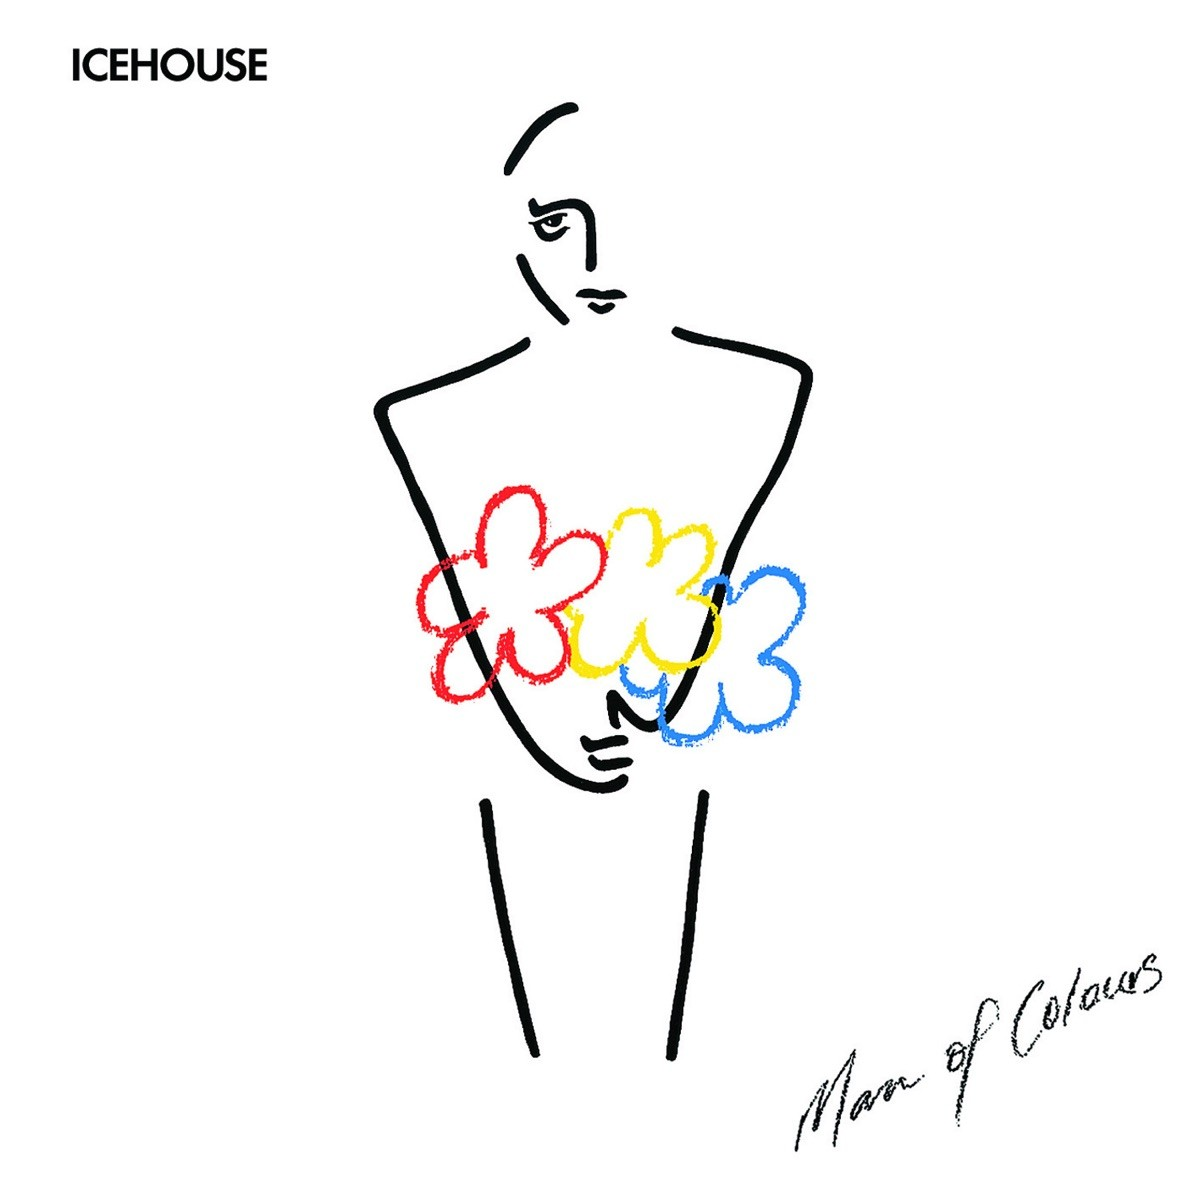 Icehouse - Man Of Colours VINYL - 602527975801